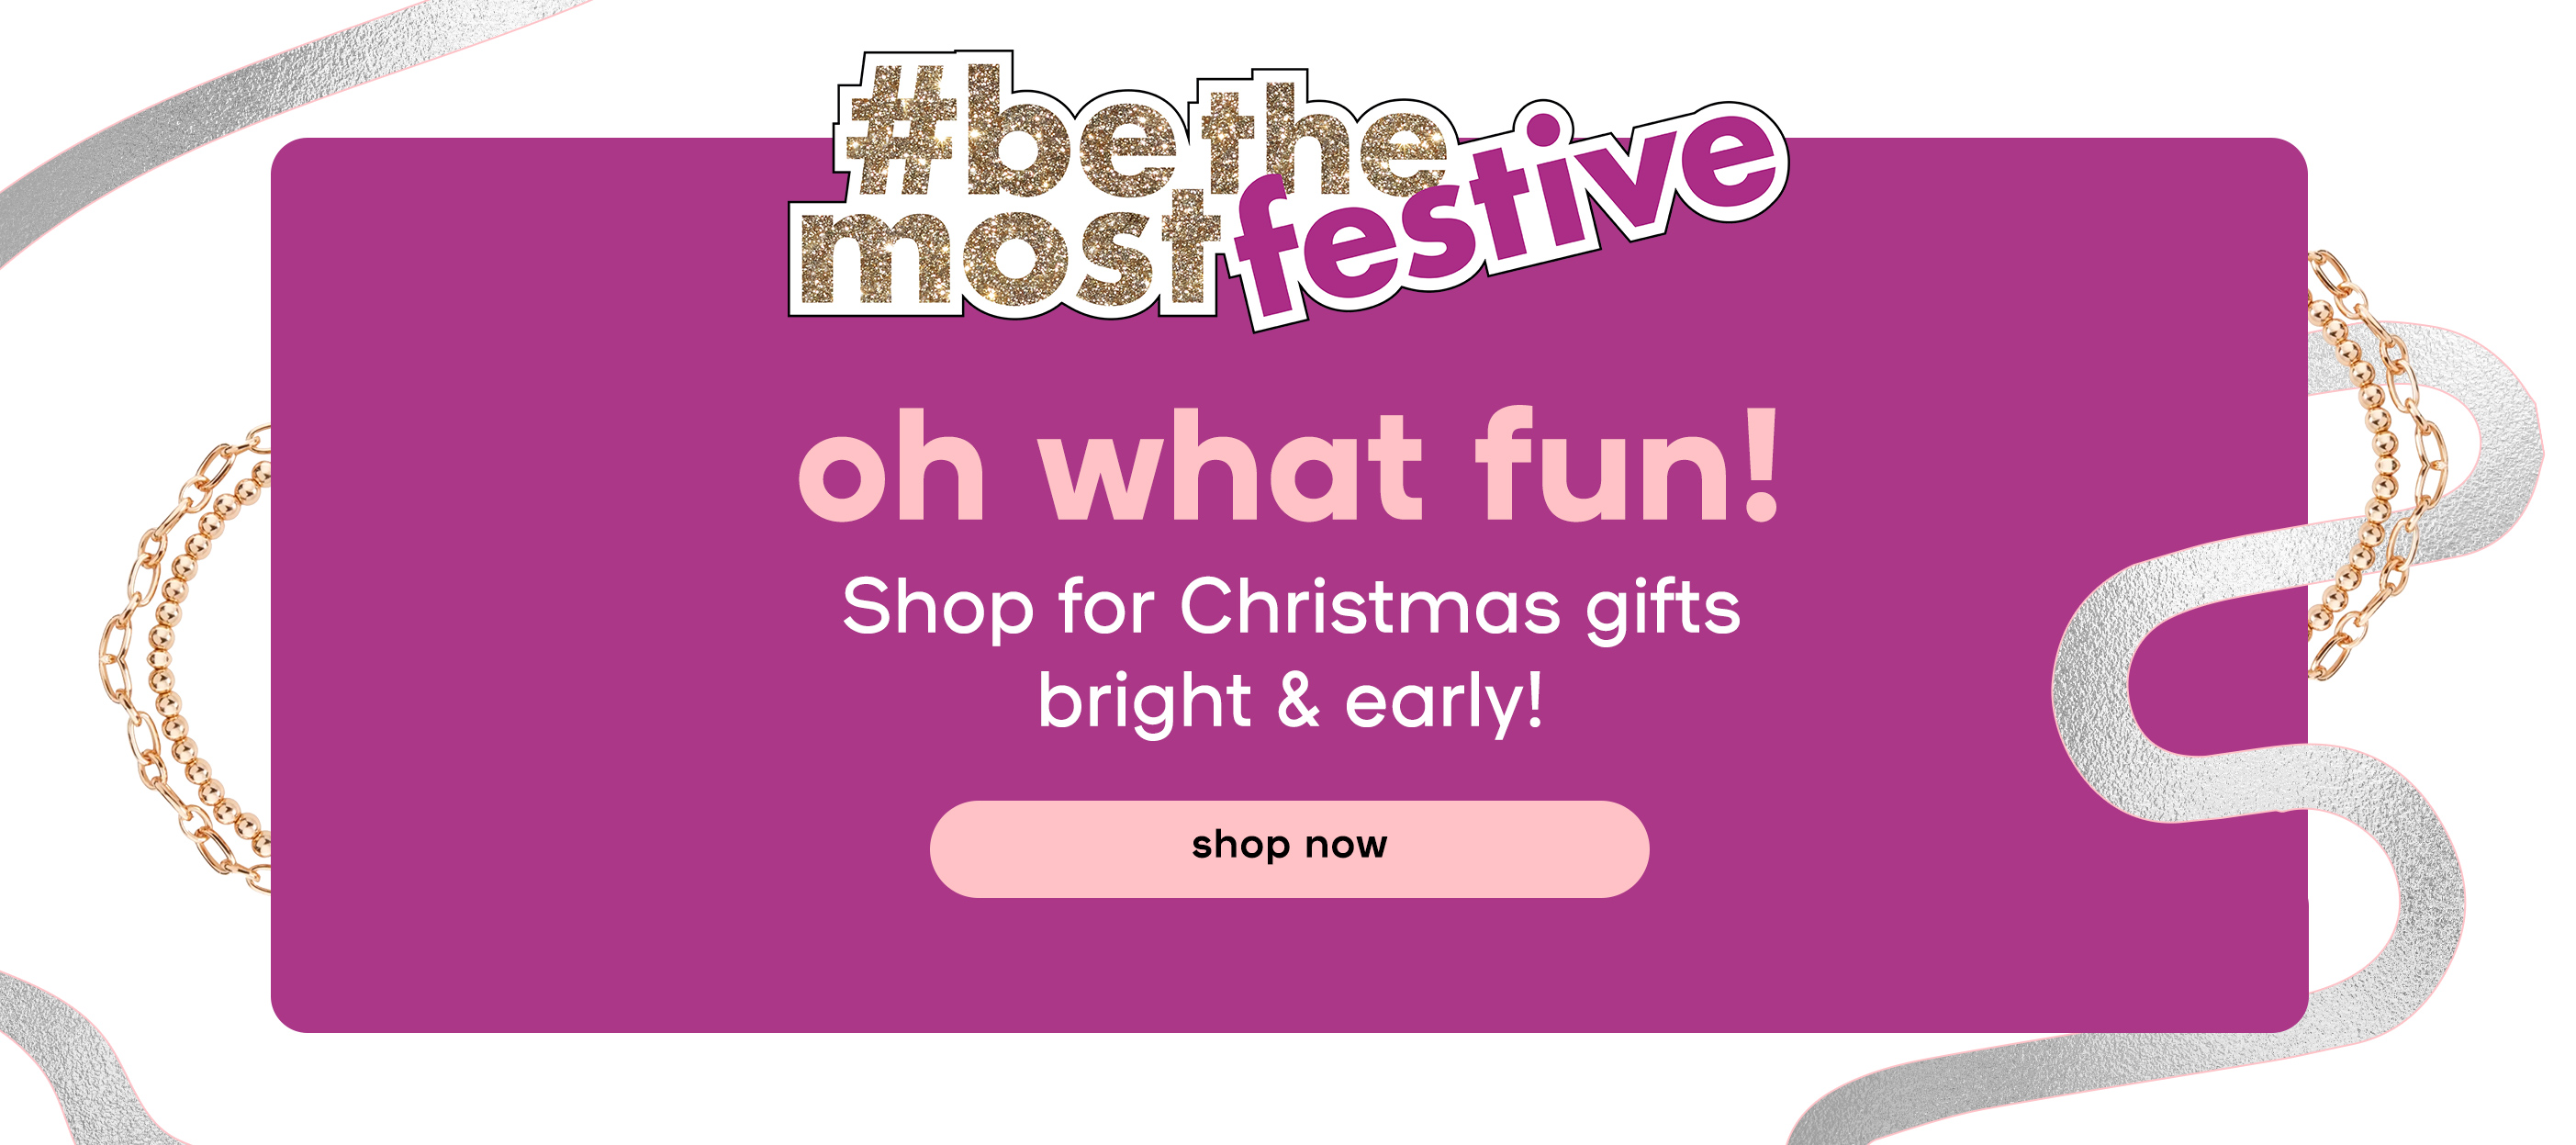 Oh what fun! Shop for Christmas gifts bright & early!